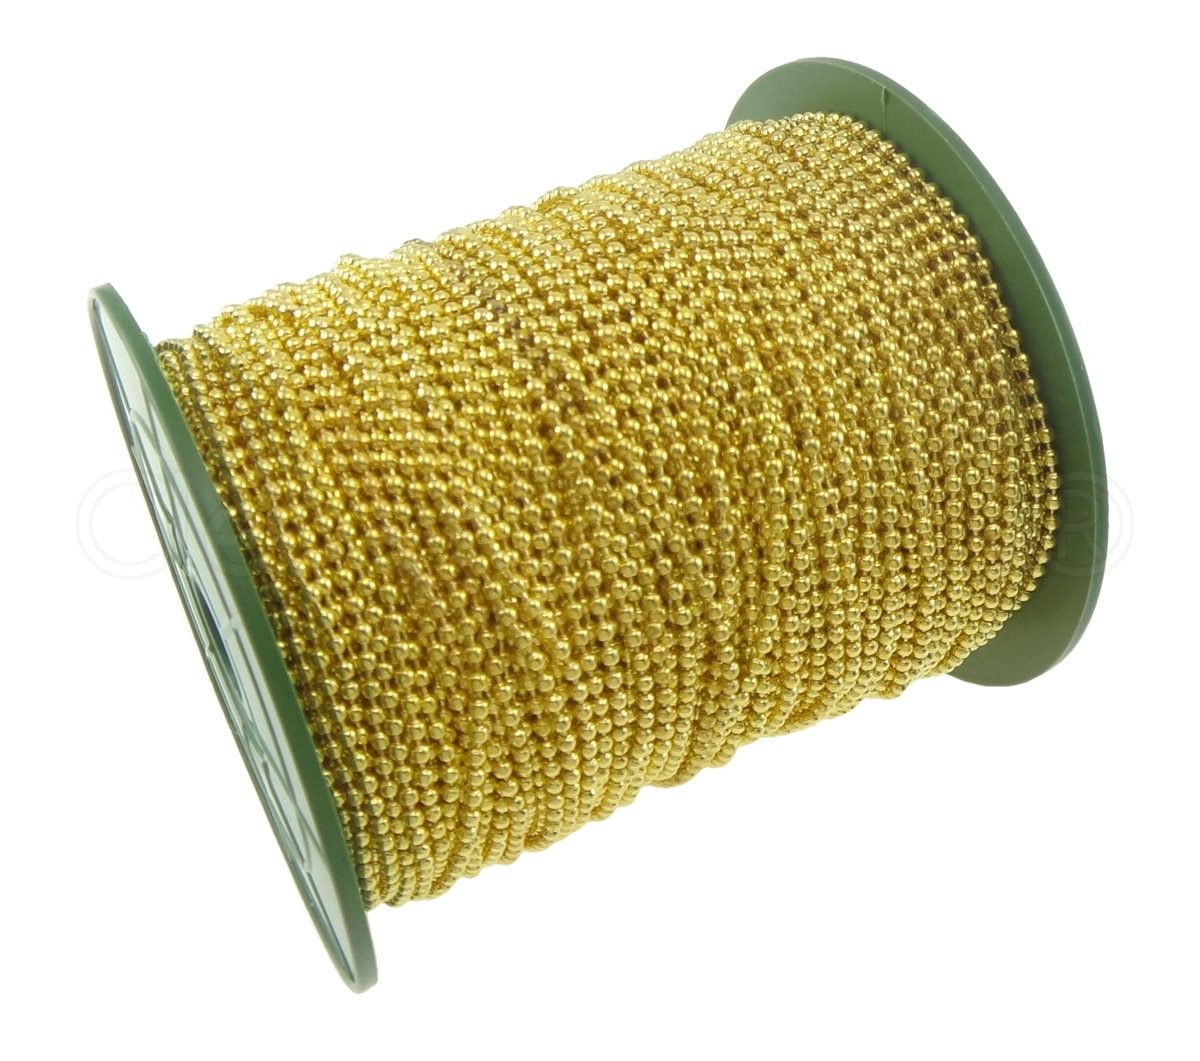 CleverDelights Ball Chain Spool 330 Feet Gold Color 2.4mm Ball #3 Size Bulk Chain Roll